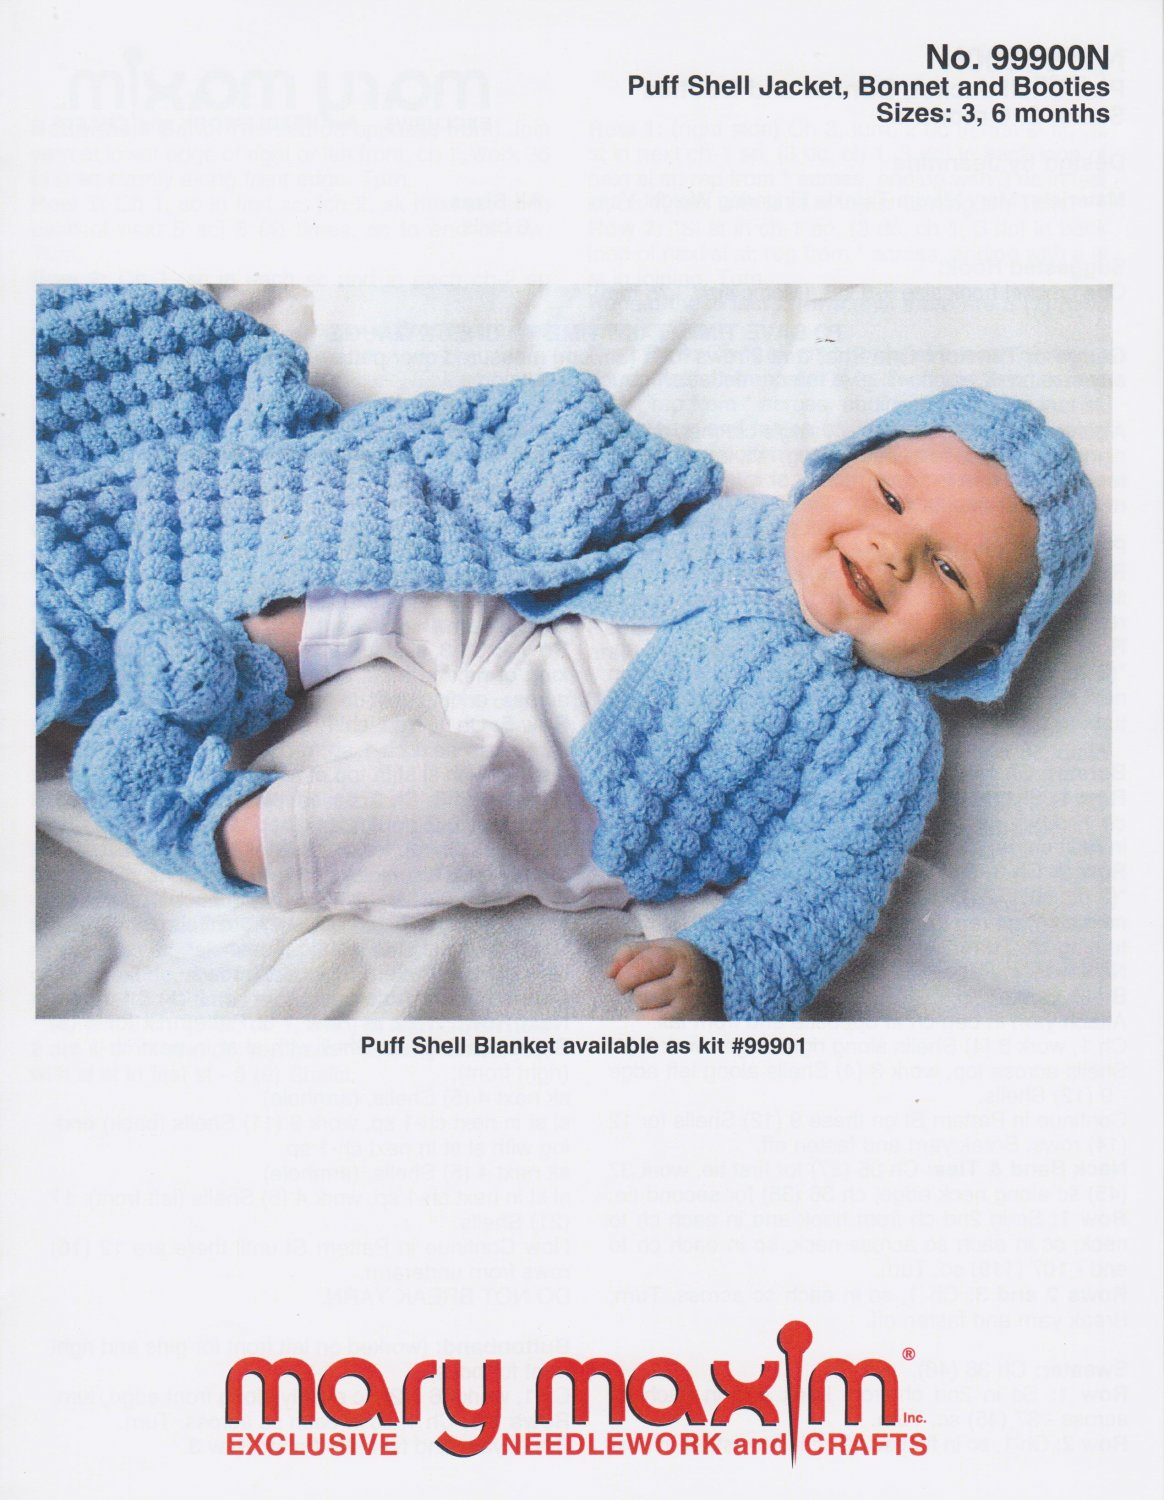 Mary Maxim Crochet Pattern #99900N Puff Shell Jacket Bonnet and Booties